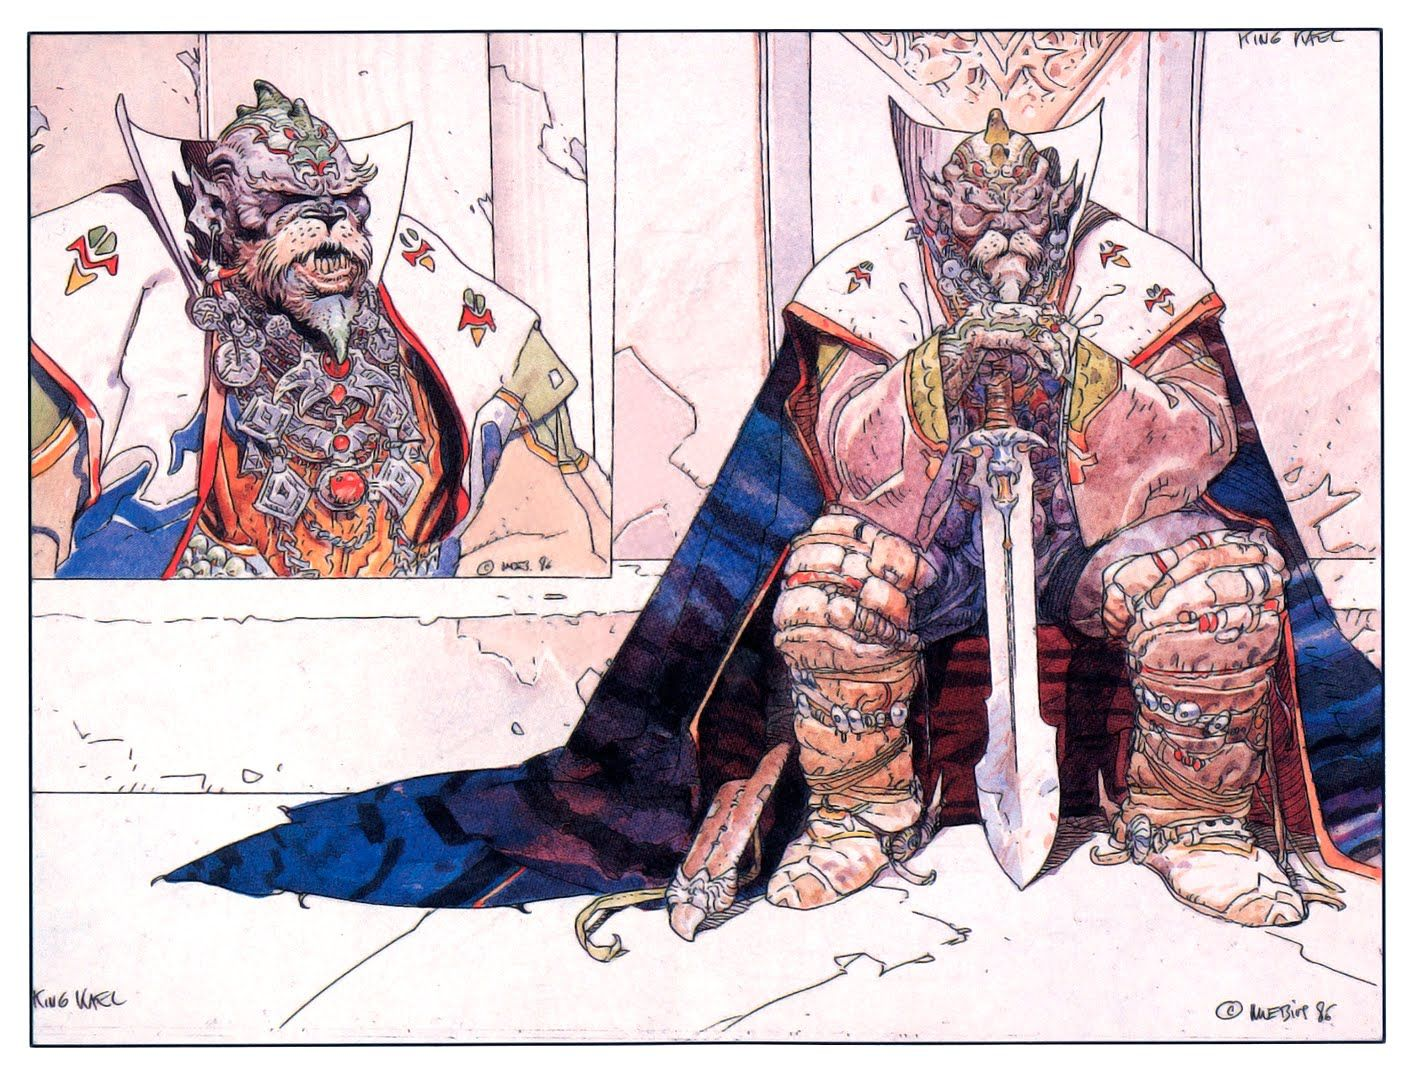 Moebius inspiration pinterest art conceptuel art for Art conceptuel oeuvre